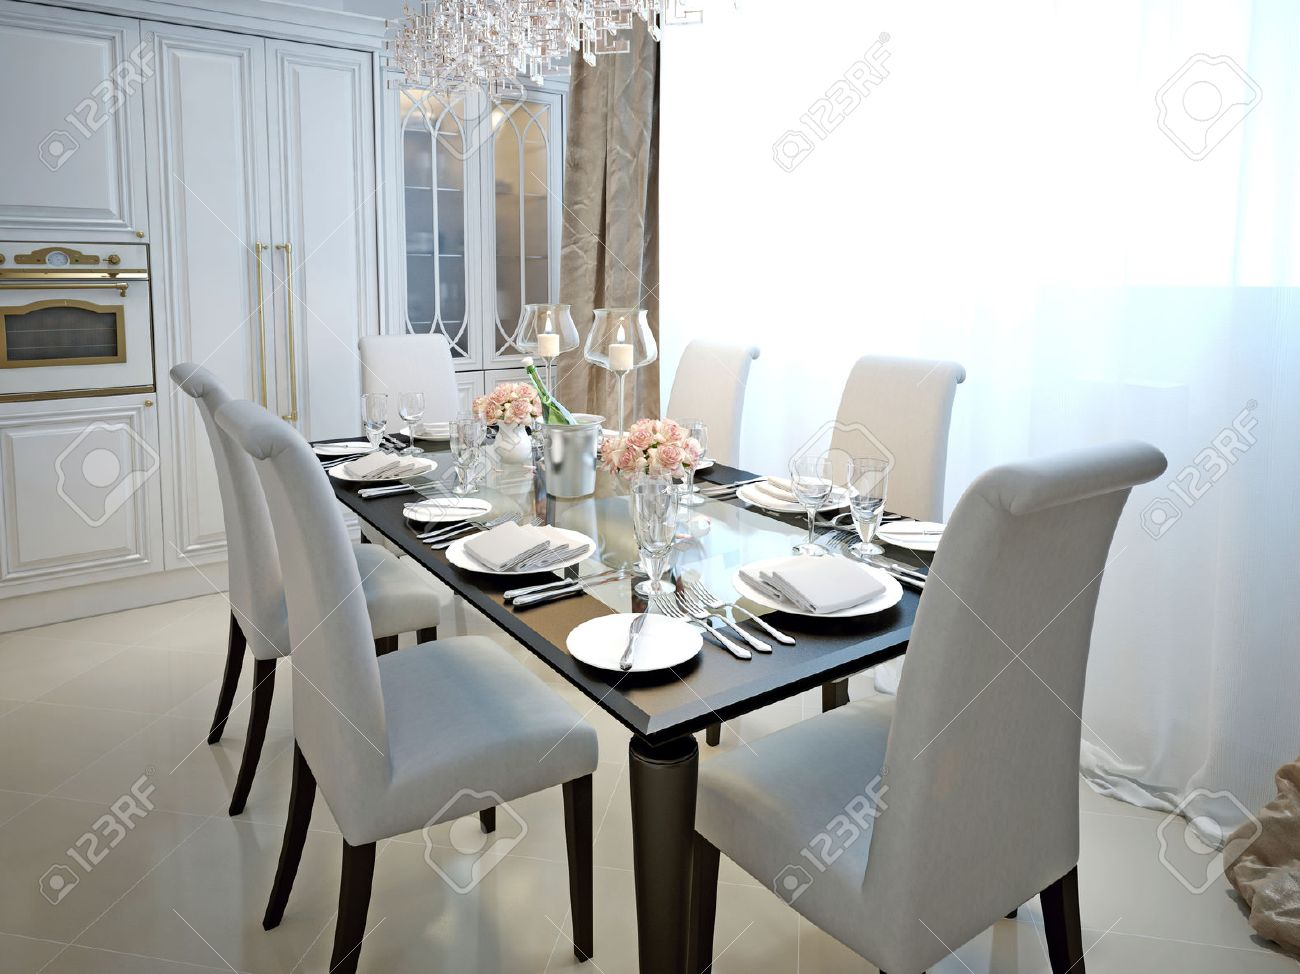 The dining room and kitchen in the style of art deco with the